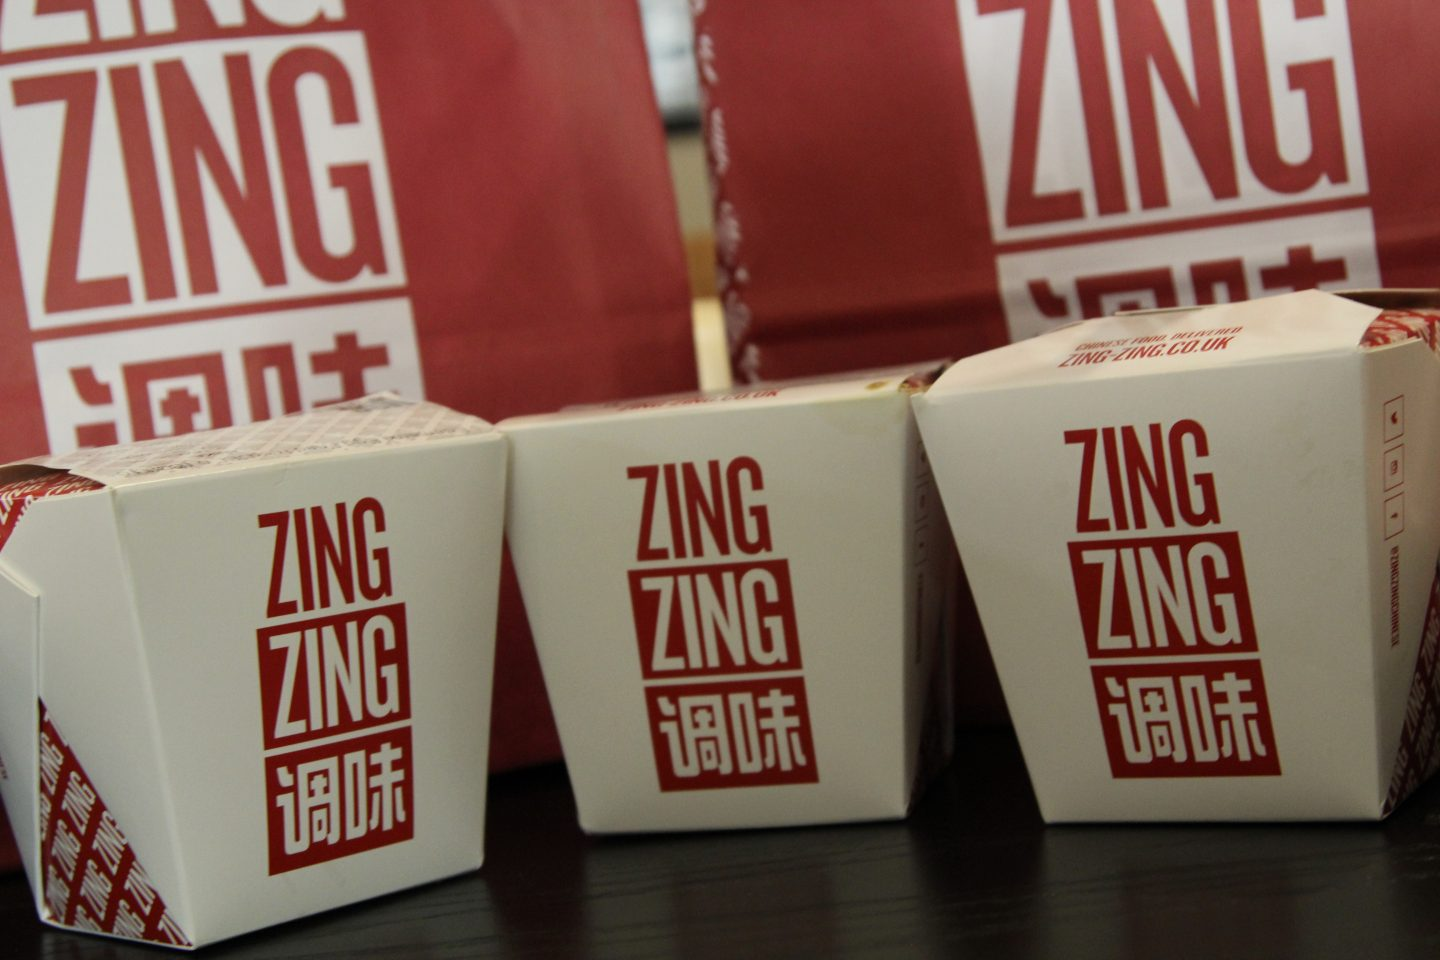 Zing Zing Vegetarian Chinese Food – ZZ Green Launch Event